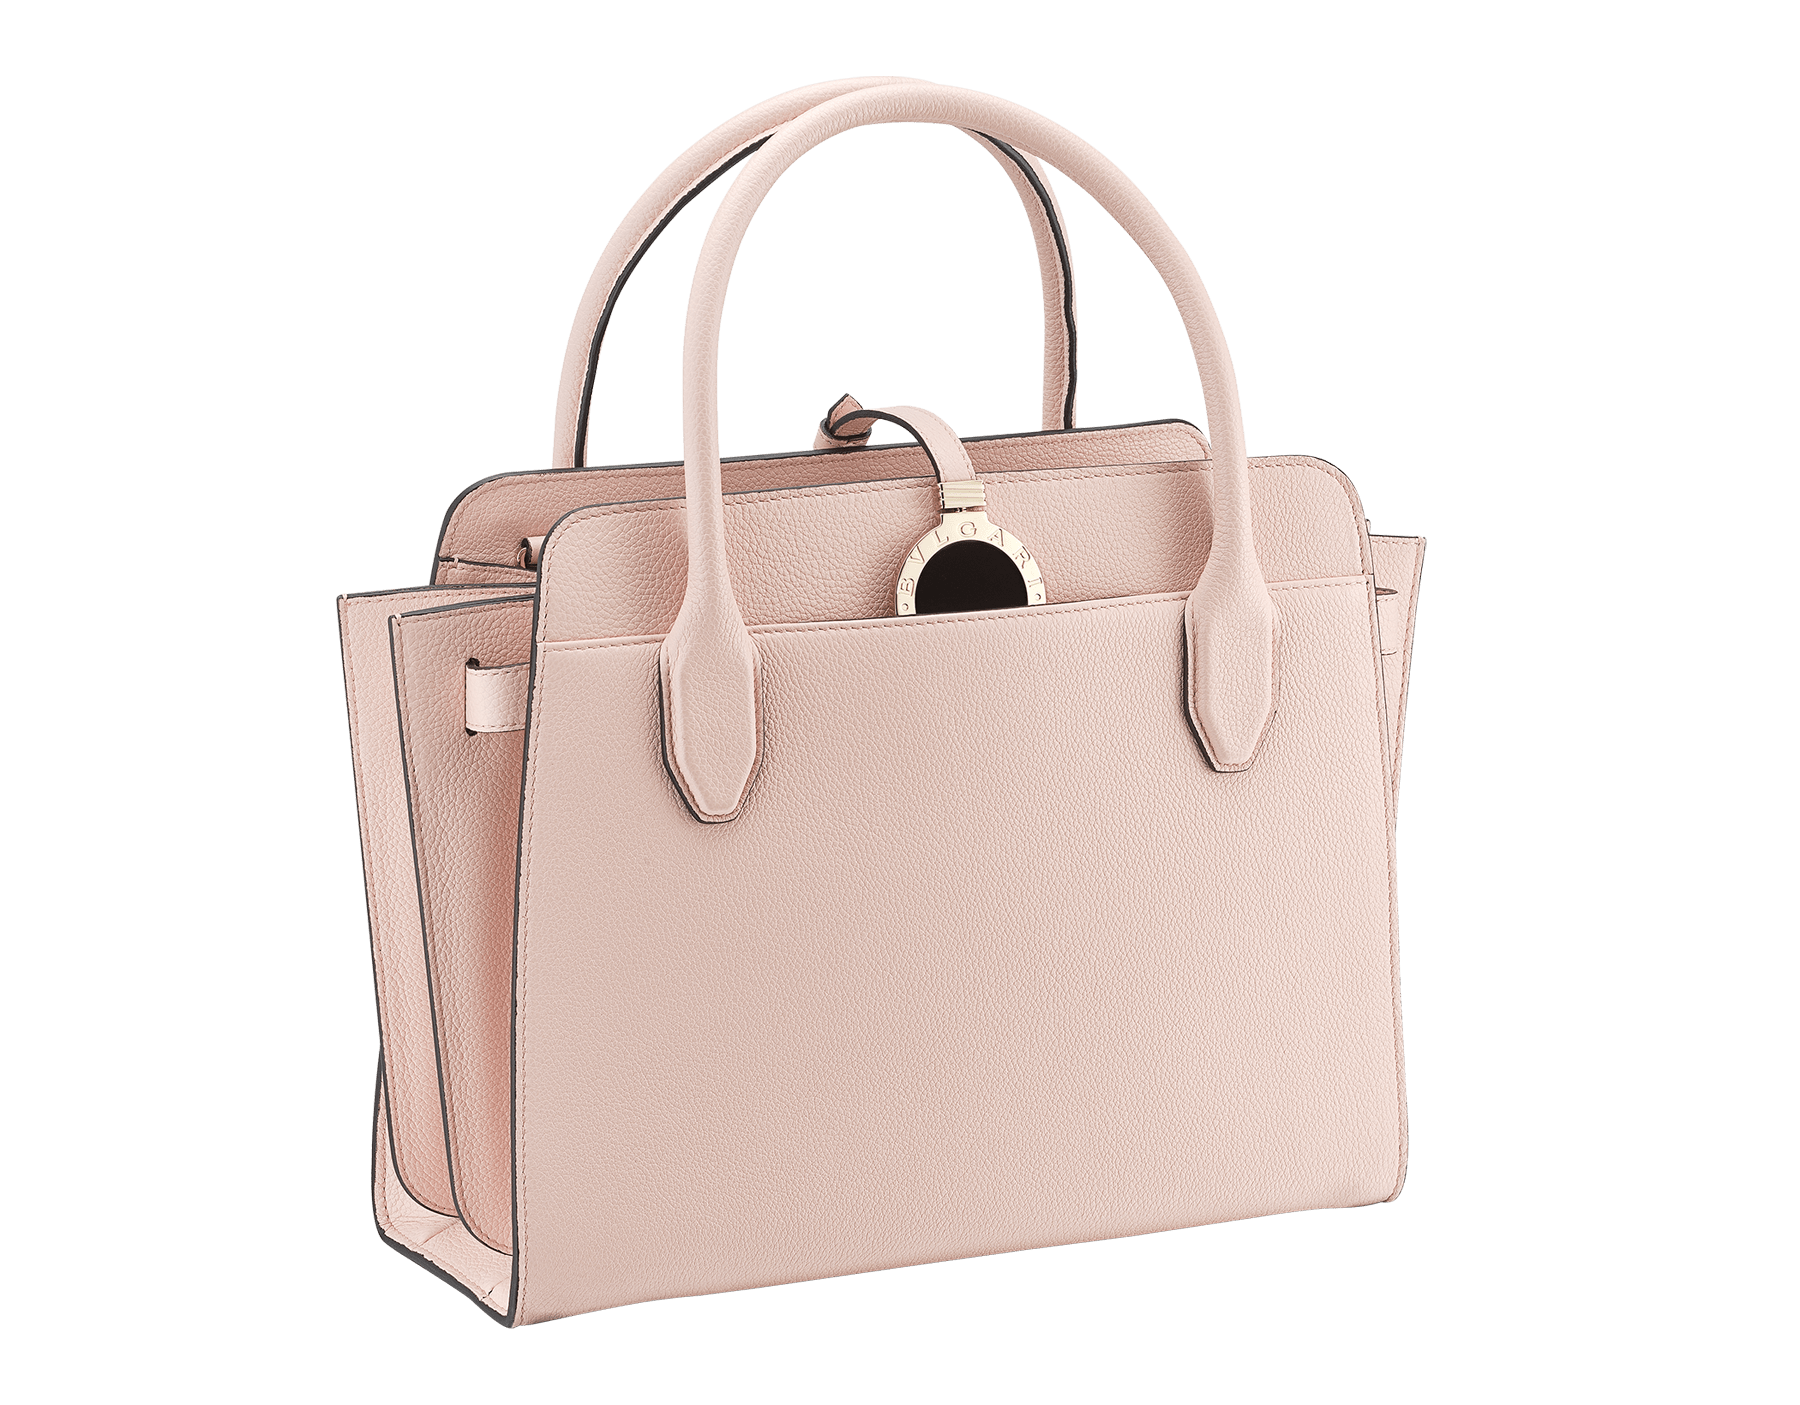 BVLGARI BVLGARI Alba tote bag in crystal rose grain calf leather, with zip closure. Iconic double logo pendant in brass light gold plated metal with black enamel on the front side, leather on the back side and Tubogas motif 834-CL image 2